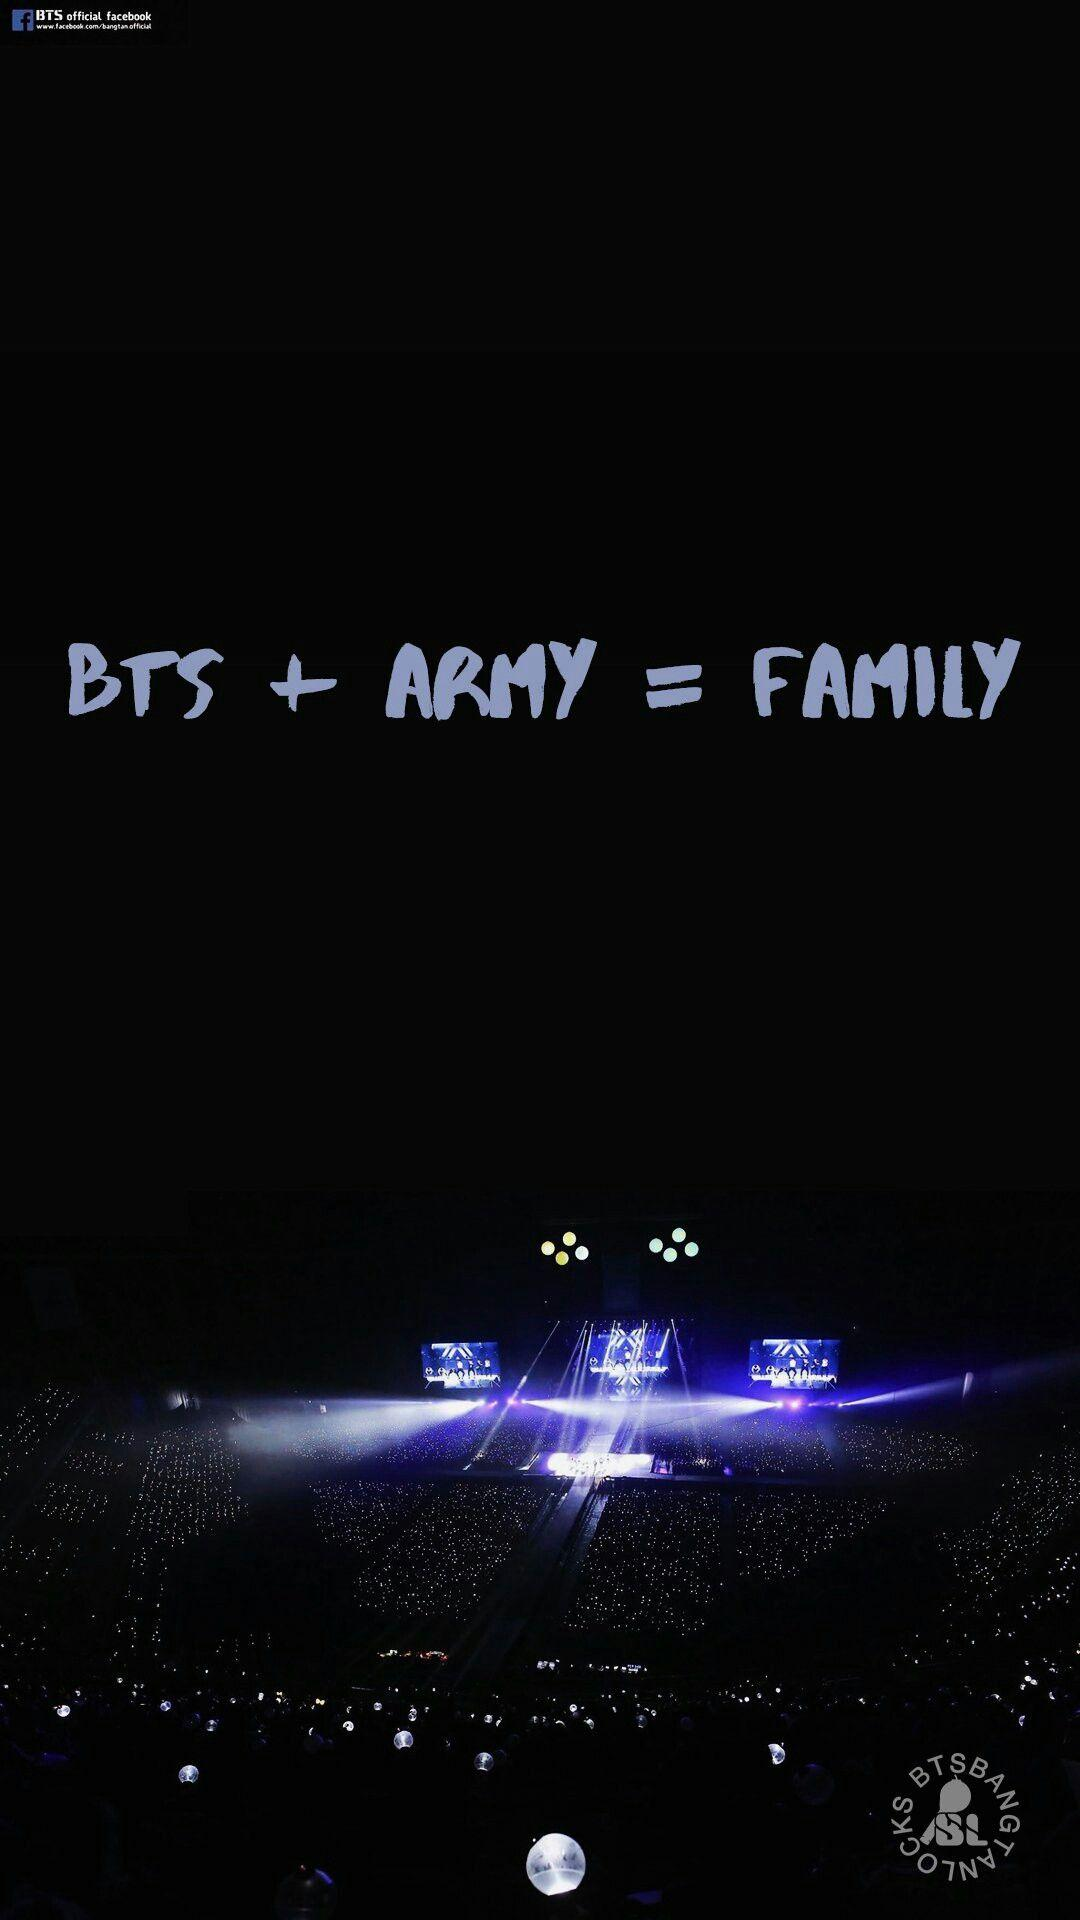 Bts And Army Logo Phone Wallpapers - Wallpaper Cave